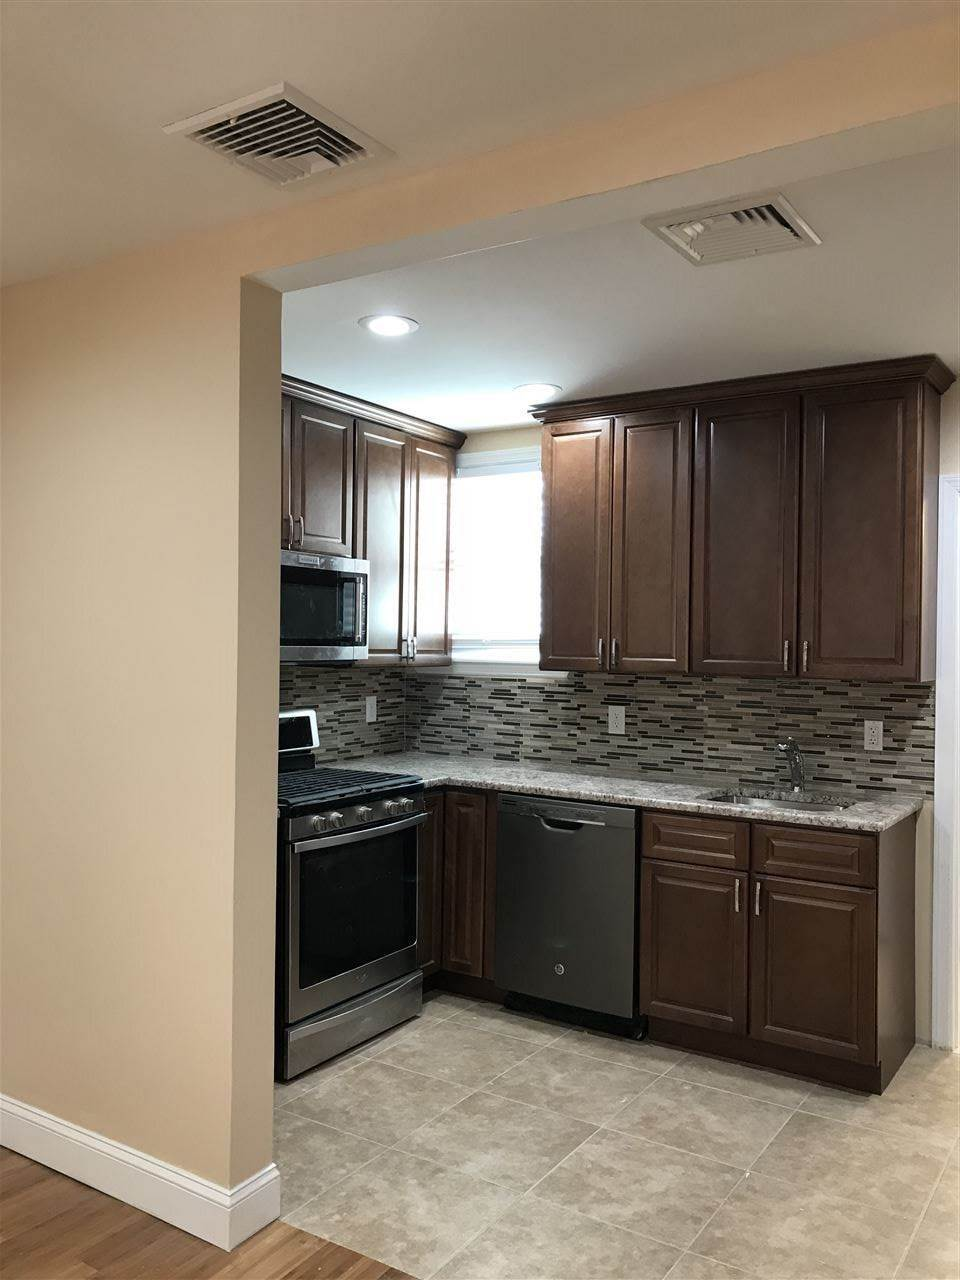 2. Apartments / Flats for Rent at 57 HAGUE STREET #4 Jersey City, New Jersey, 07307 United States